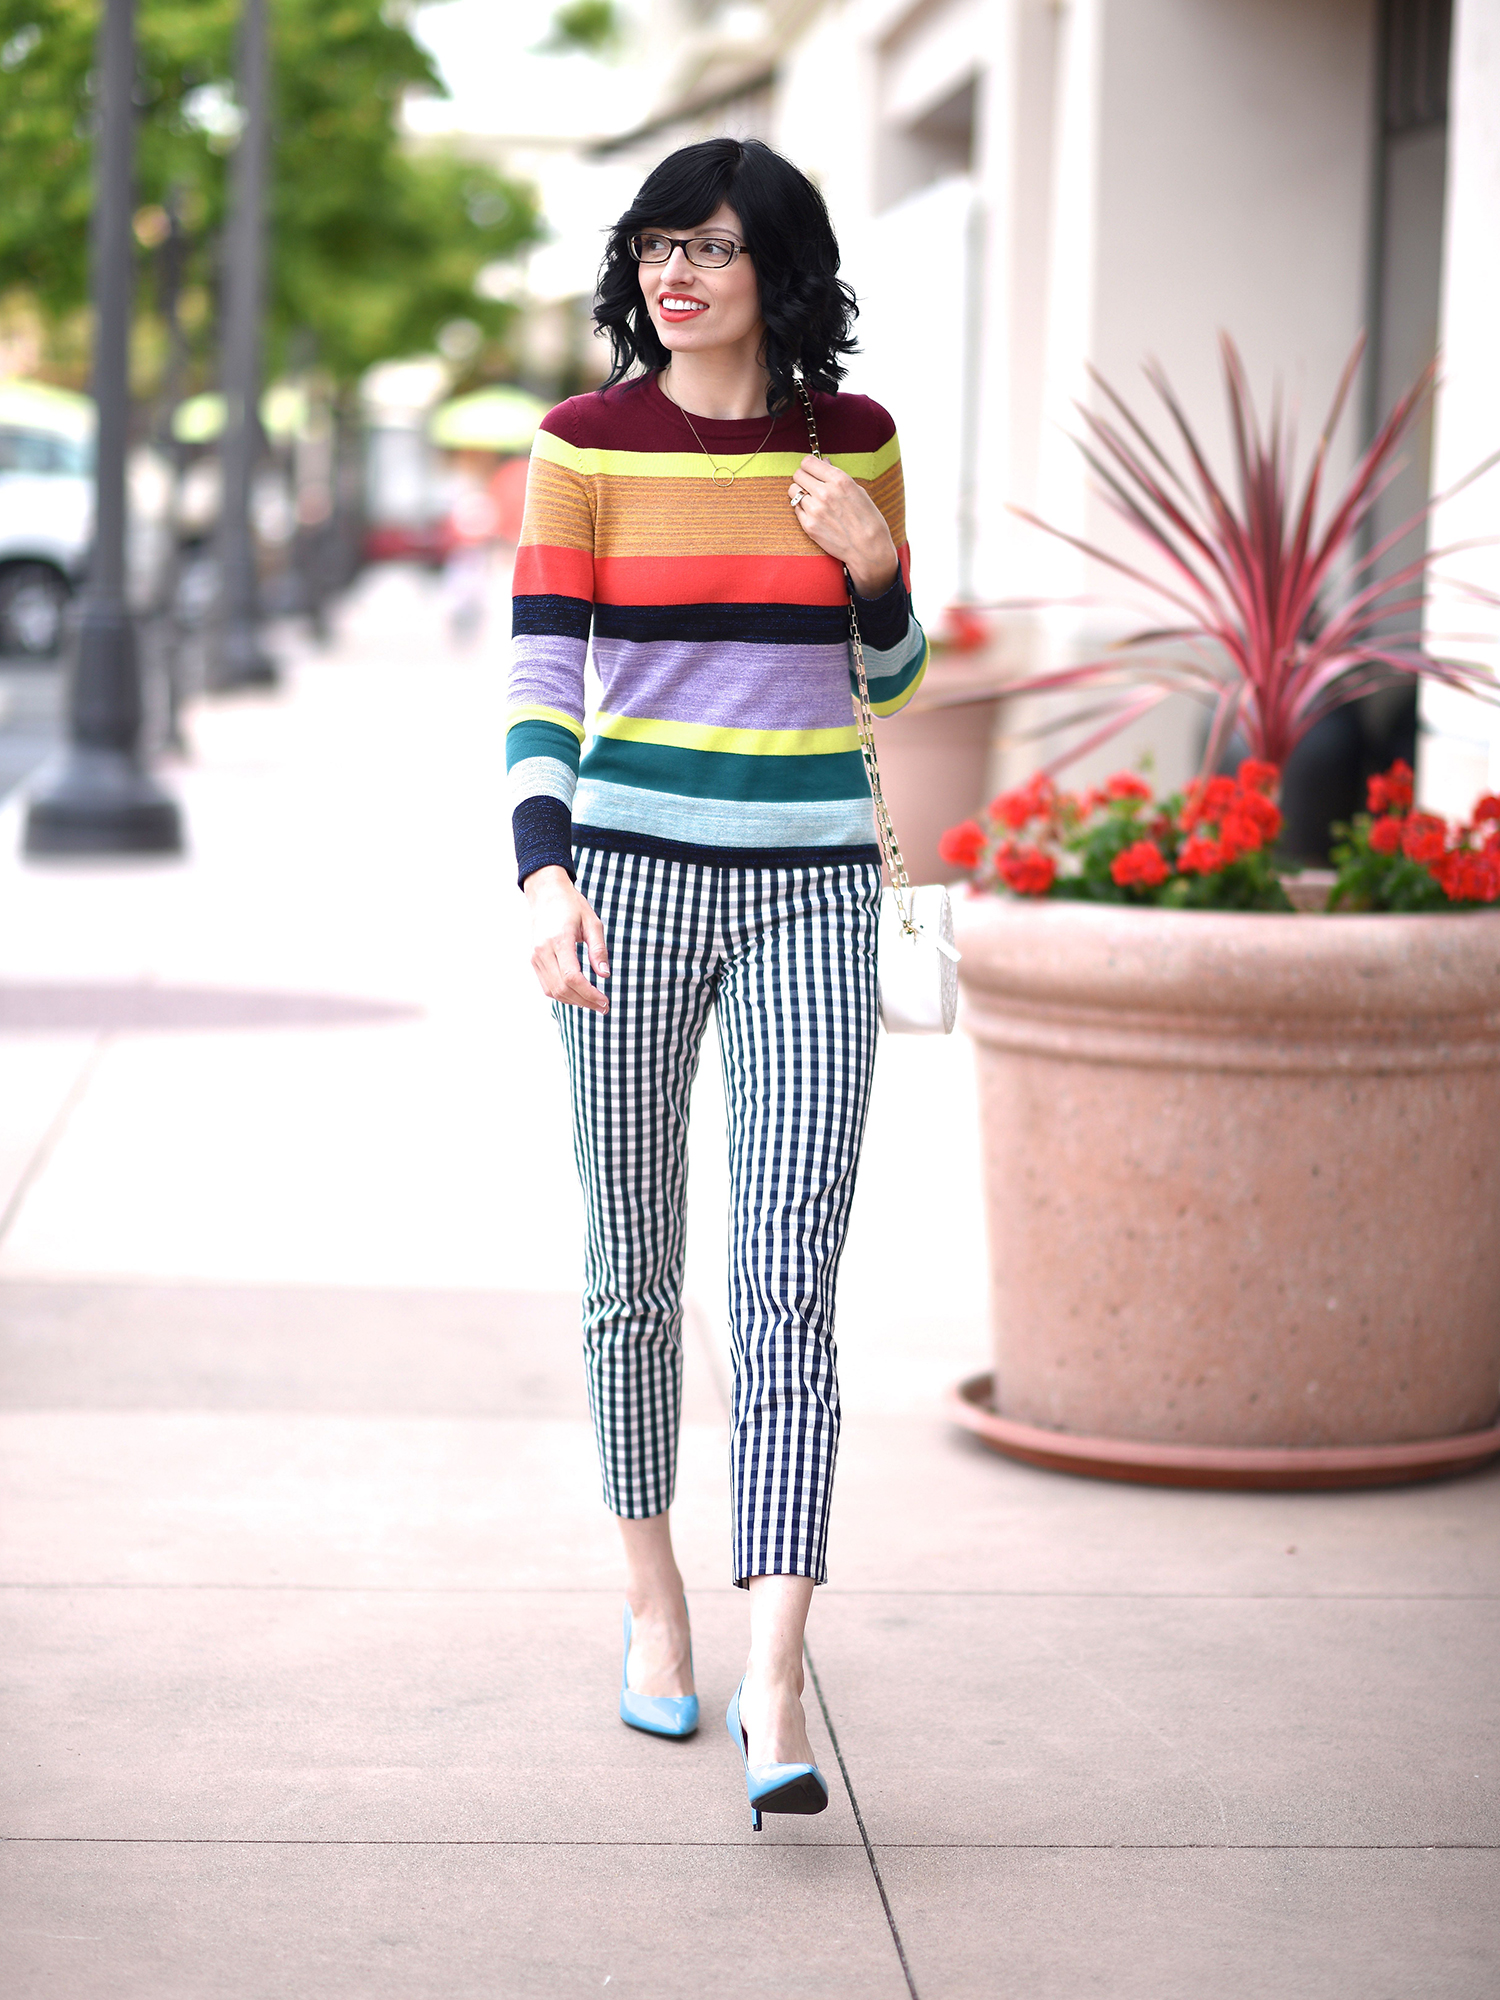 Jenna Pilant Lucky Little Mustardseed How To Mix Pattern Clothing 1